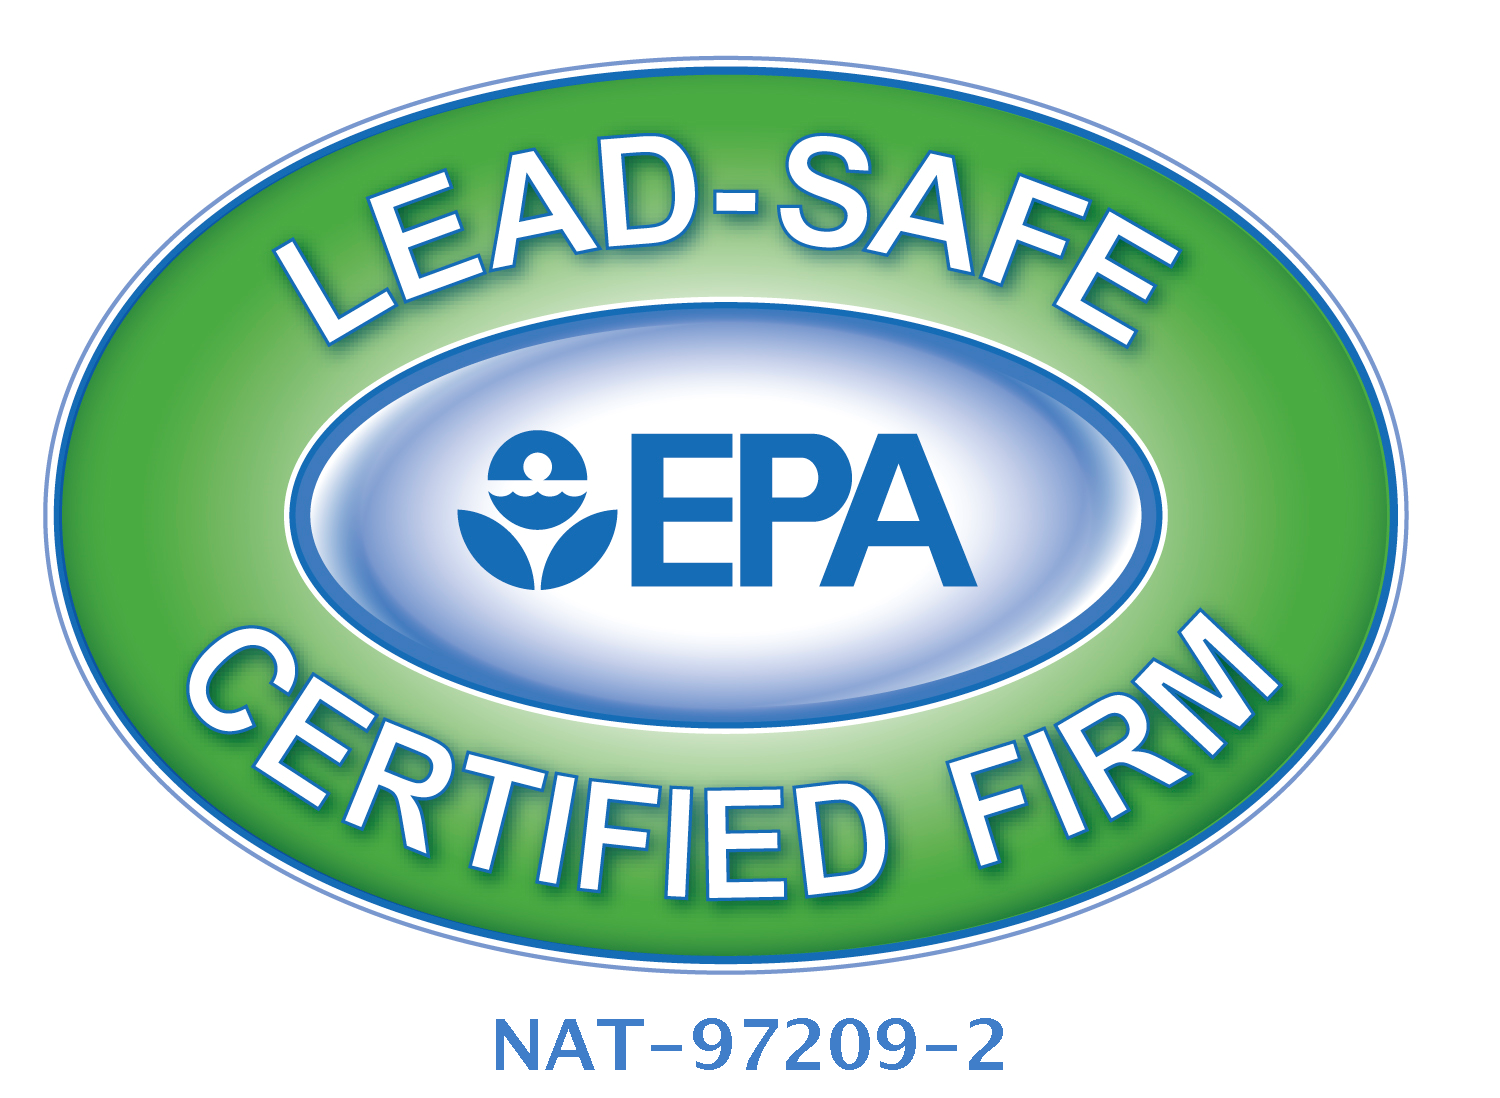 Lead Safe Epa Certified Plumber in Miami, Ft Lauderdale, Pembroke Pikes, Miamim